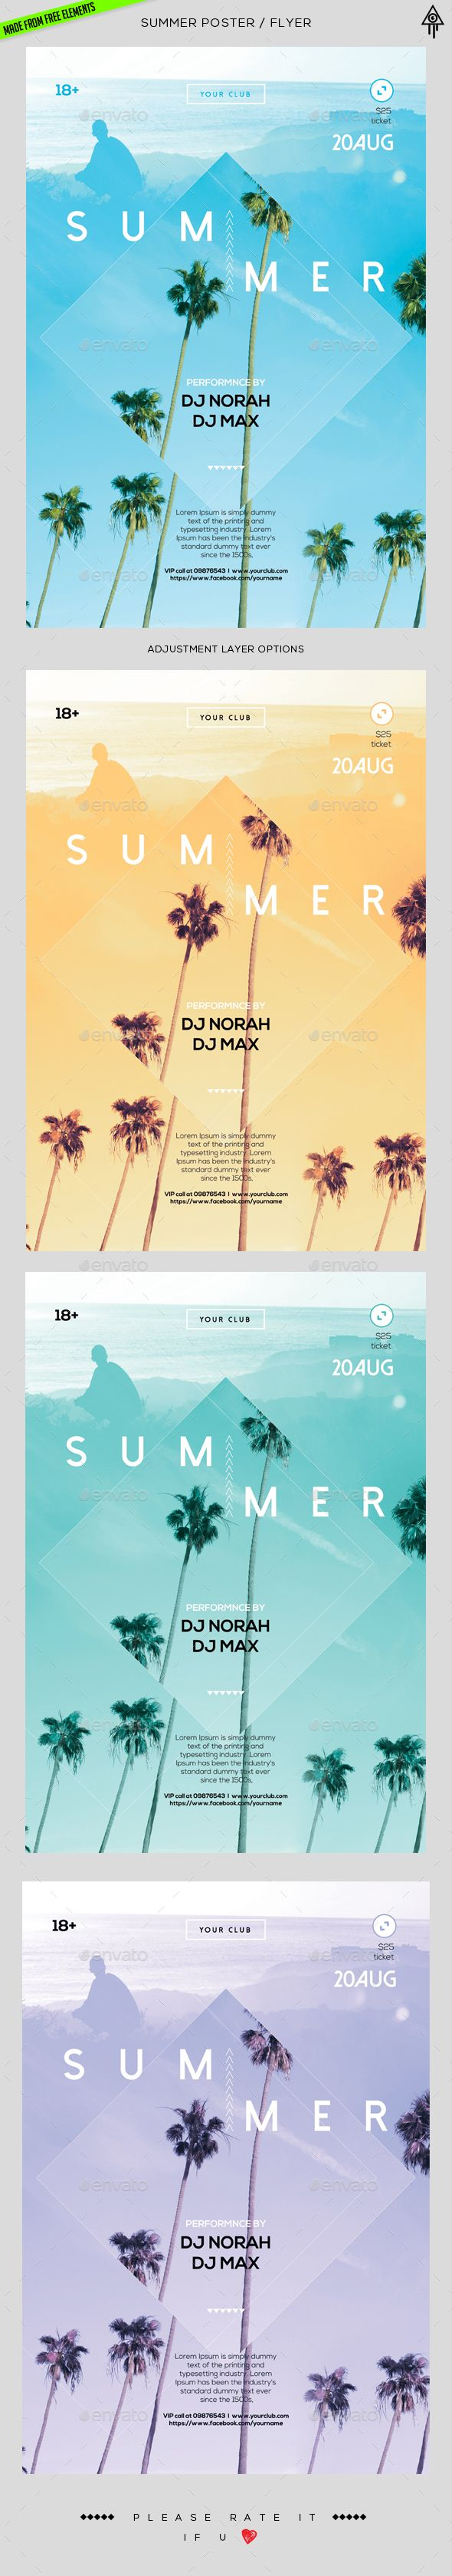 Summer Poster / Flyer Template PSD. Download here: http://graphicriver.net/item/summer-poster-flyer/16669722?ref=ksioks